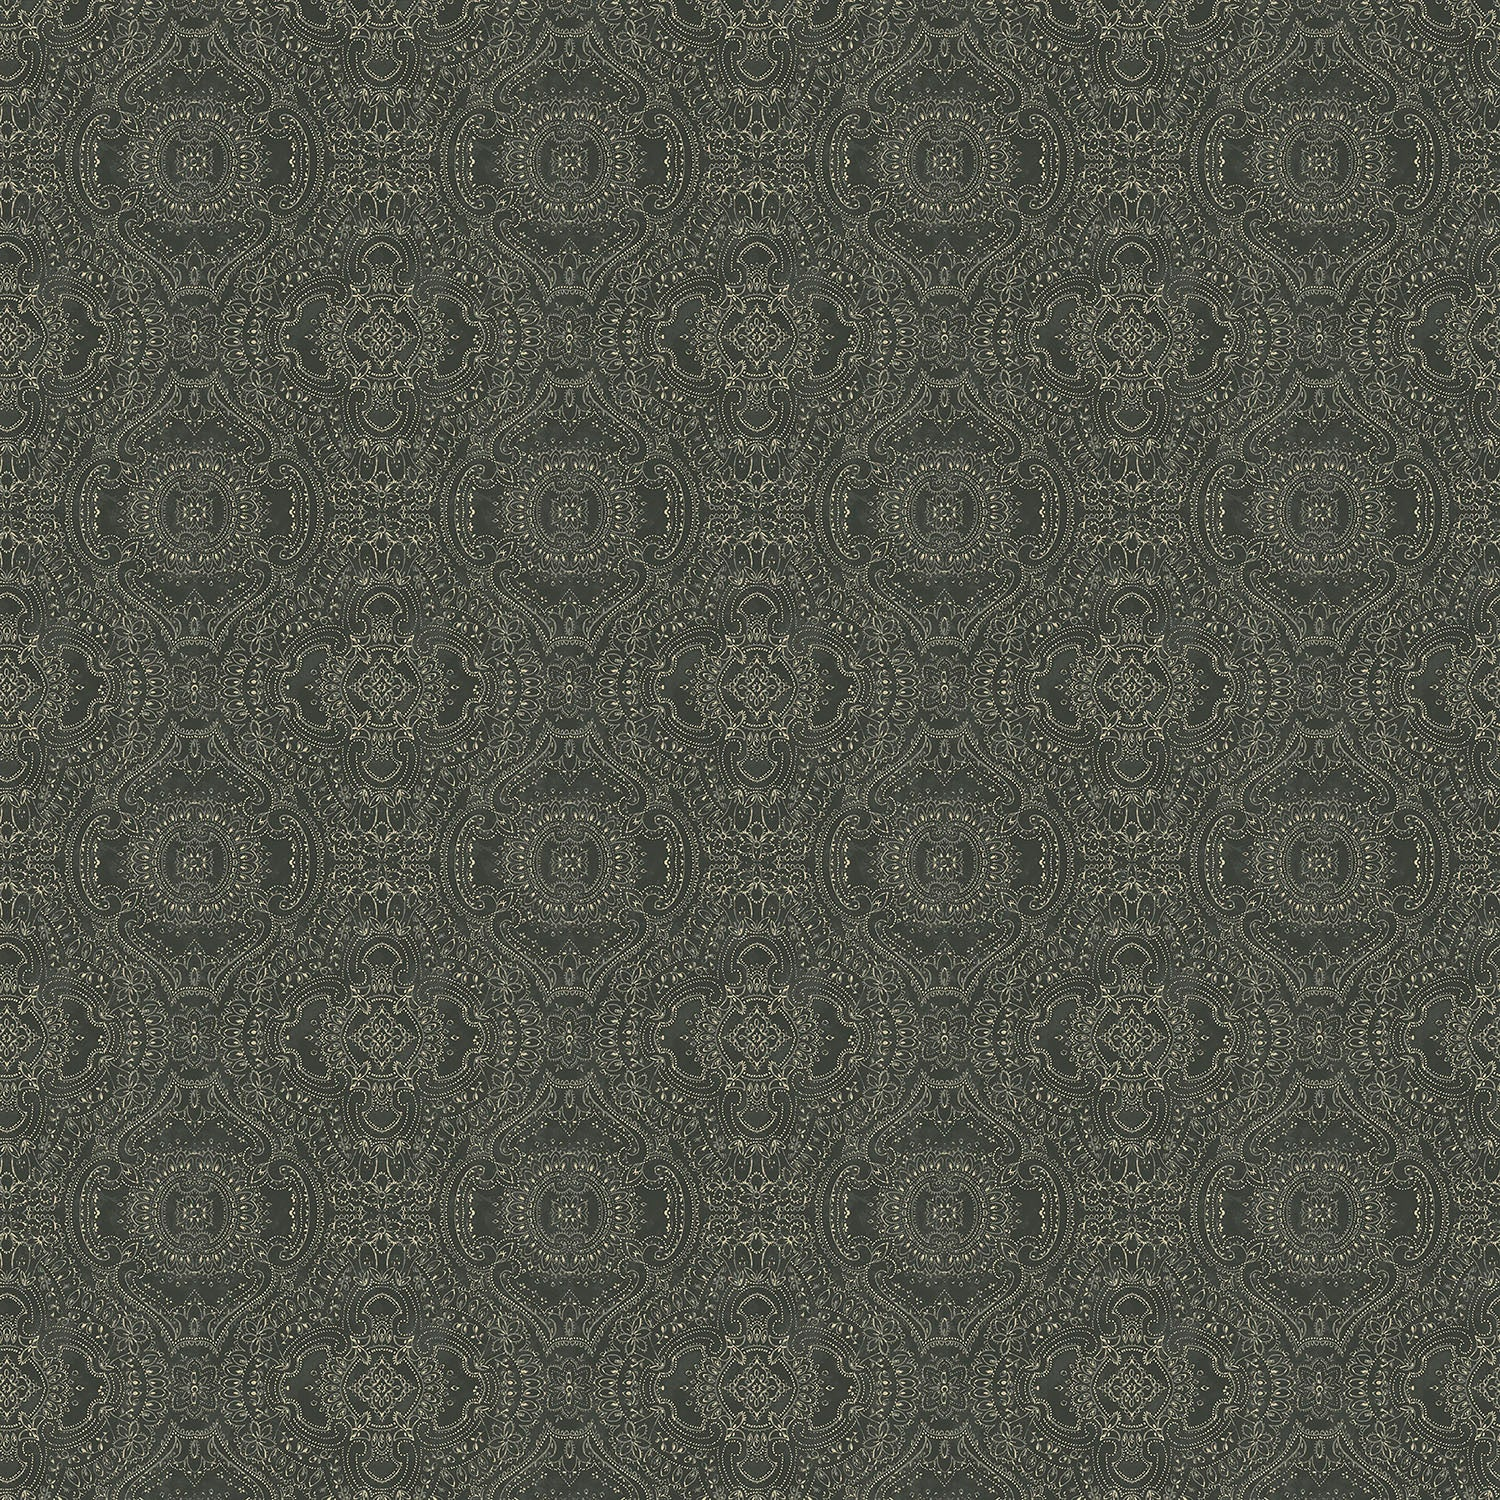 Wallpaper for walls in dark grey and white with an intricate jewel like design